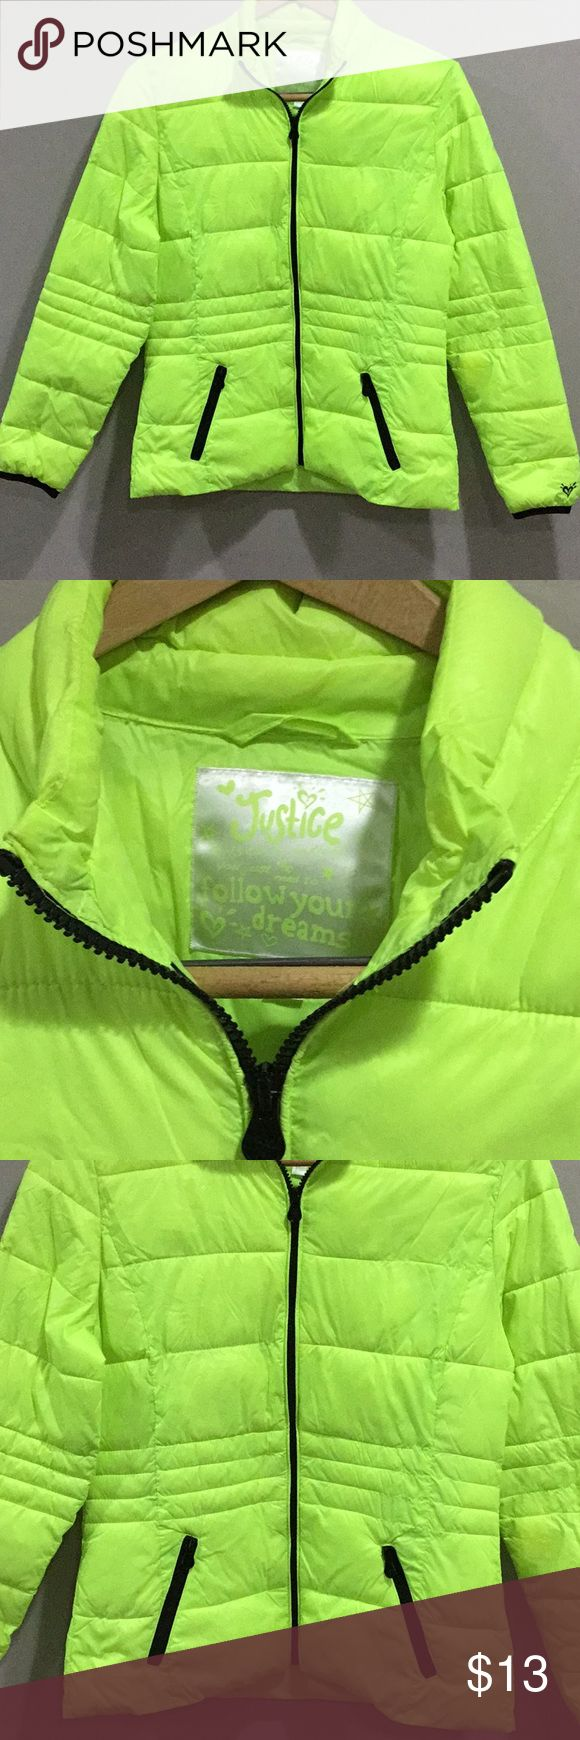 JUSTICE PUFFER COAT NEON LIME SZ 18 GOOD CONDITION. SIZE 18. NEON HIGHLIGHTER GREEN PUFFER JACKET. SMALL STAIN BARELY NOTICEABLE, ON ARM SEE PIC. Justice Jackets & Coats Puffers